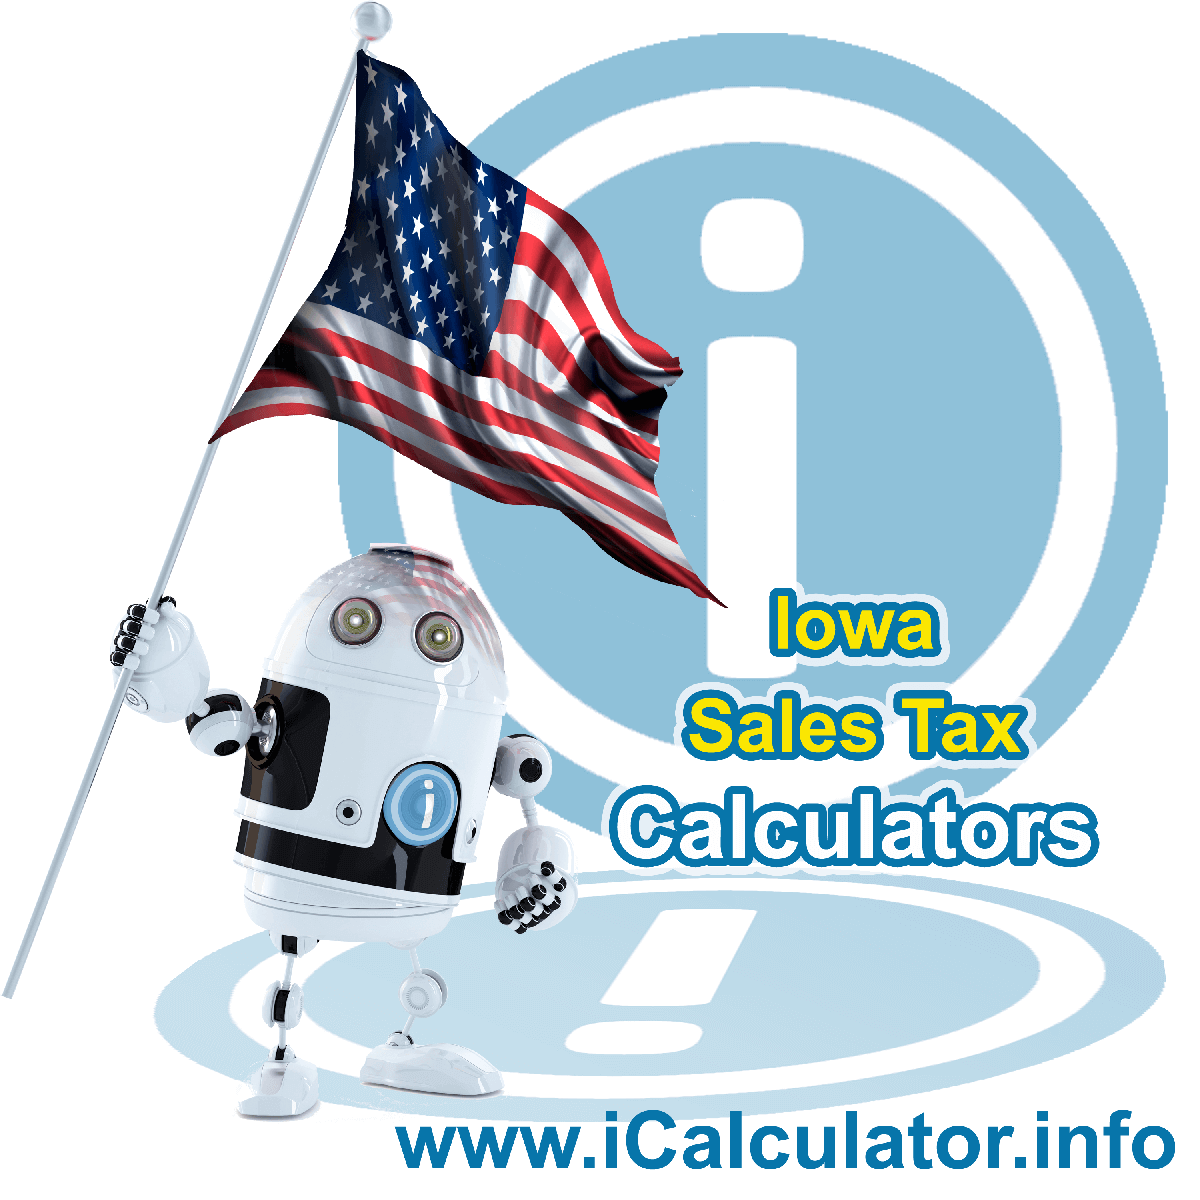 Iowa Sales Tax Comparison Calculator: This image illustrates a calculator robot comparing sales tax in Iowa manually using the Iowa Sales Tax Formula. You can use this information to compare Sales Tax manually or use the Iowa Sales Tax Comparison Calculator to calculate and compare Iowa sales tax online.